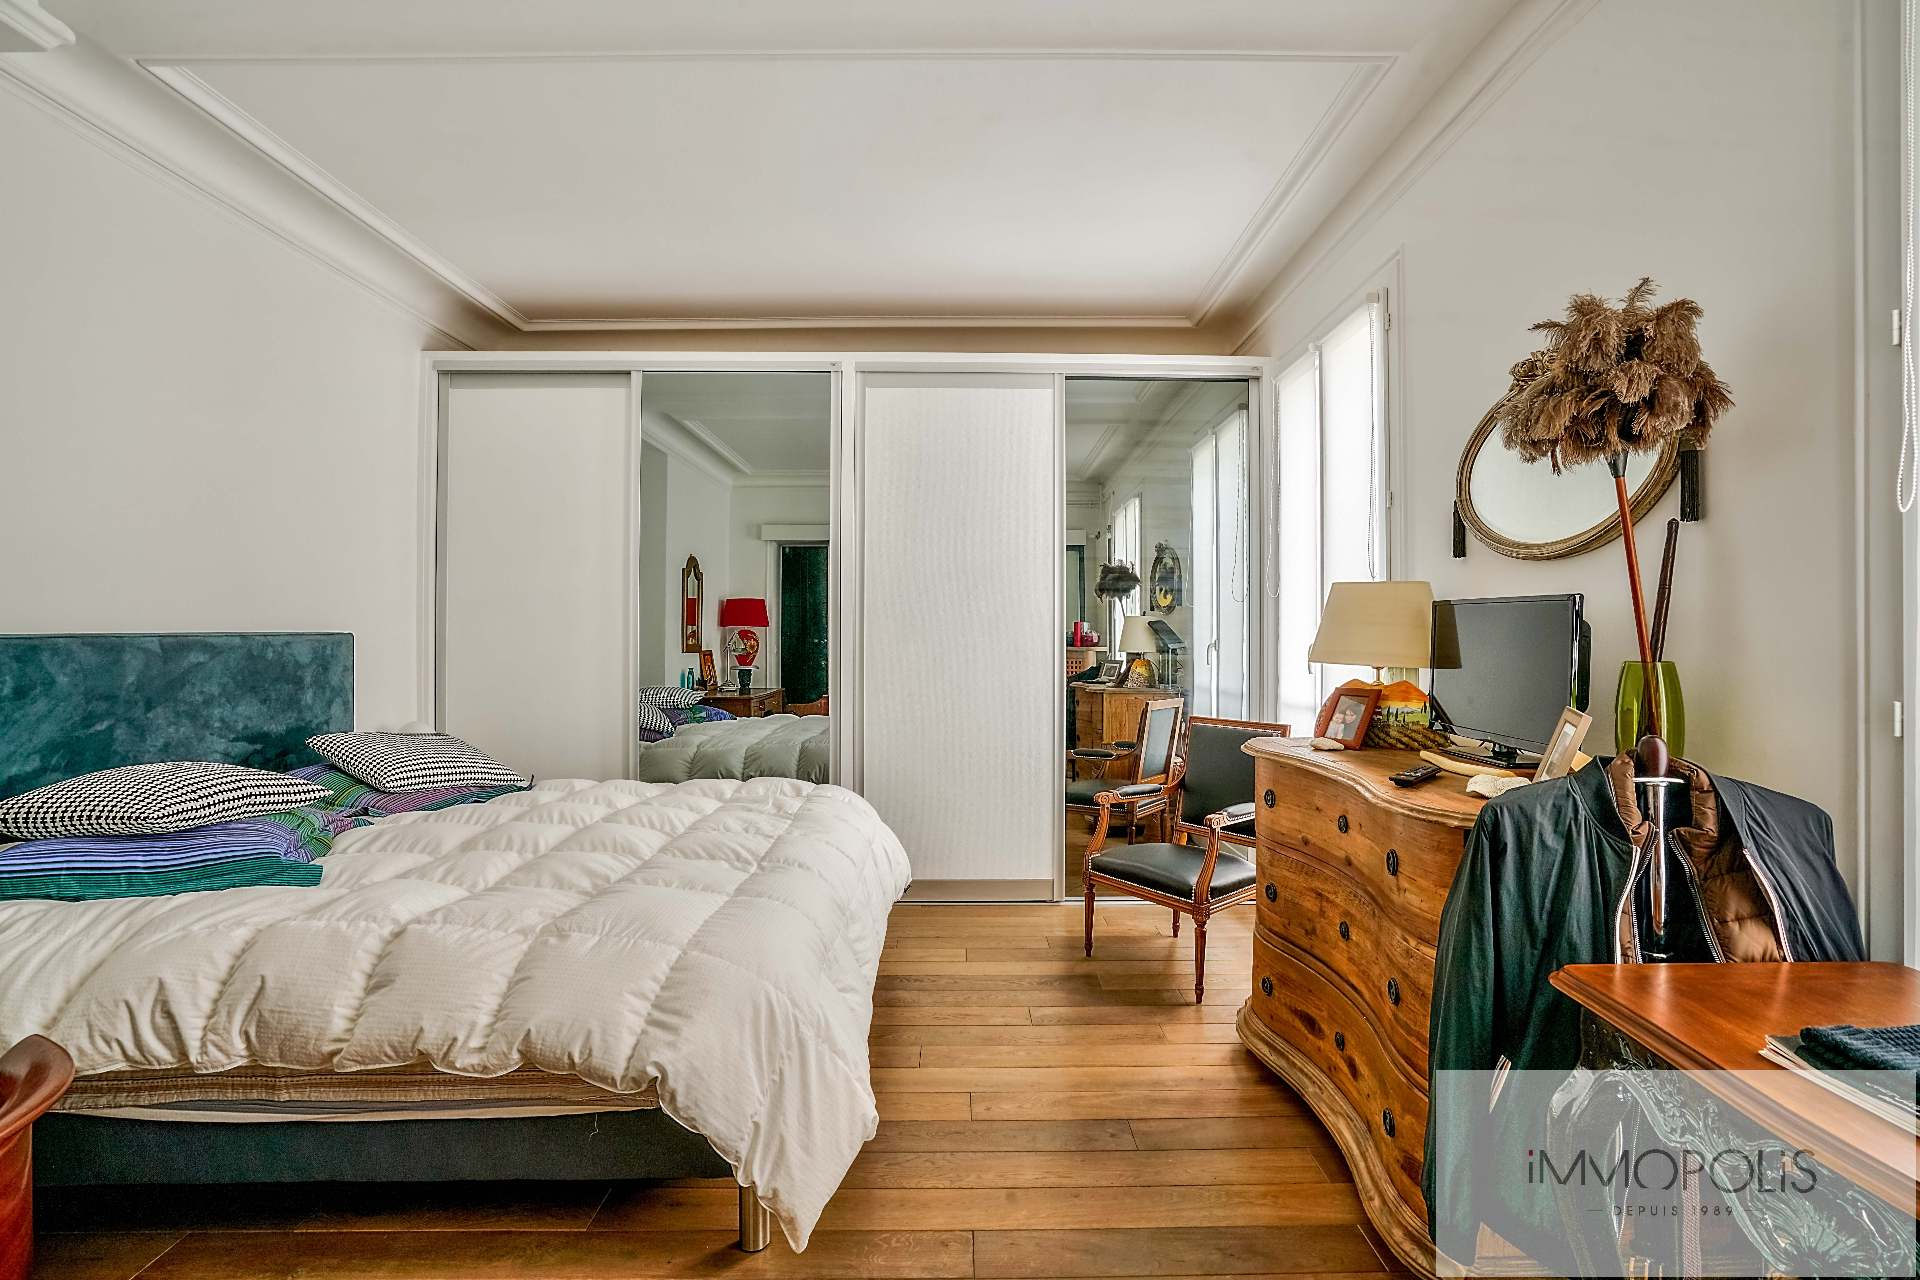 Superb 3 room apartment (currently 1 bedroom) in Montmartre, on the 3rd floor with elevator: great amenities! 5